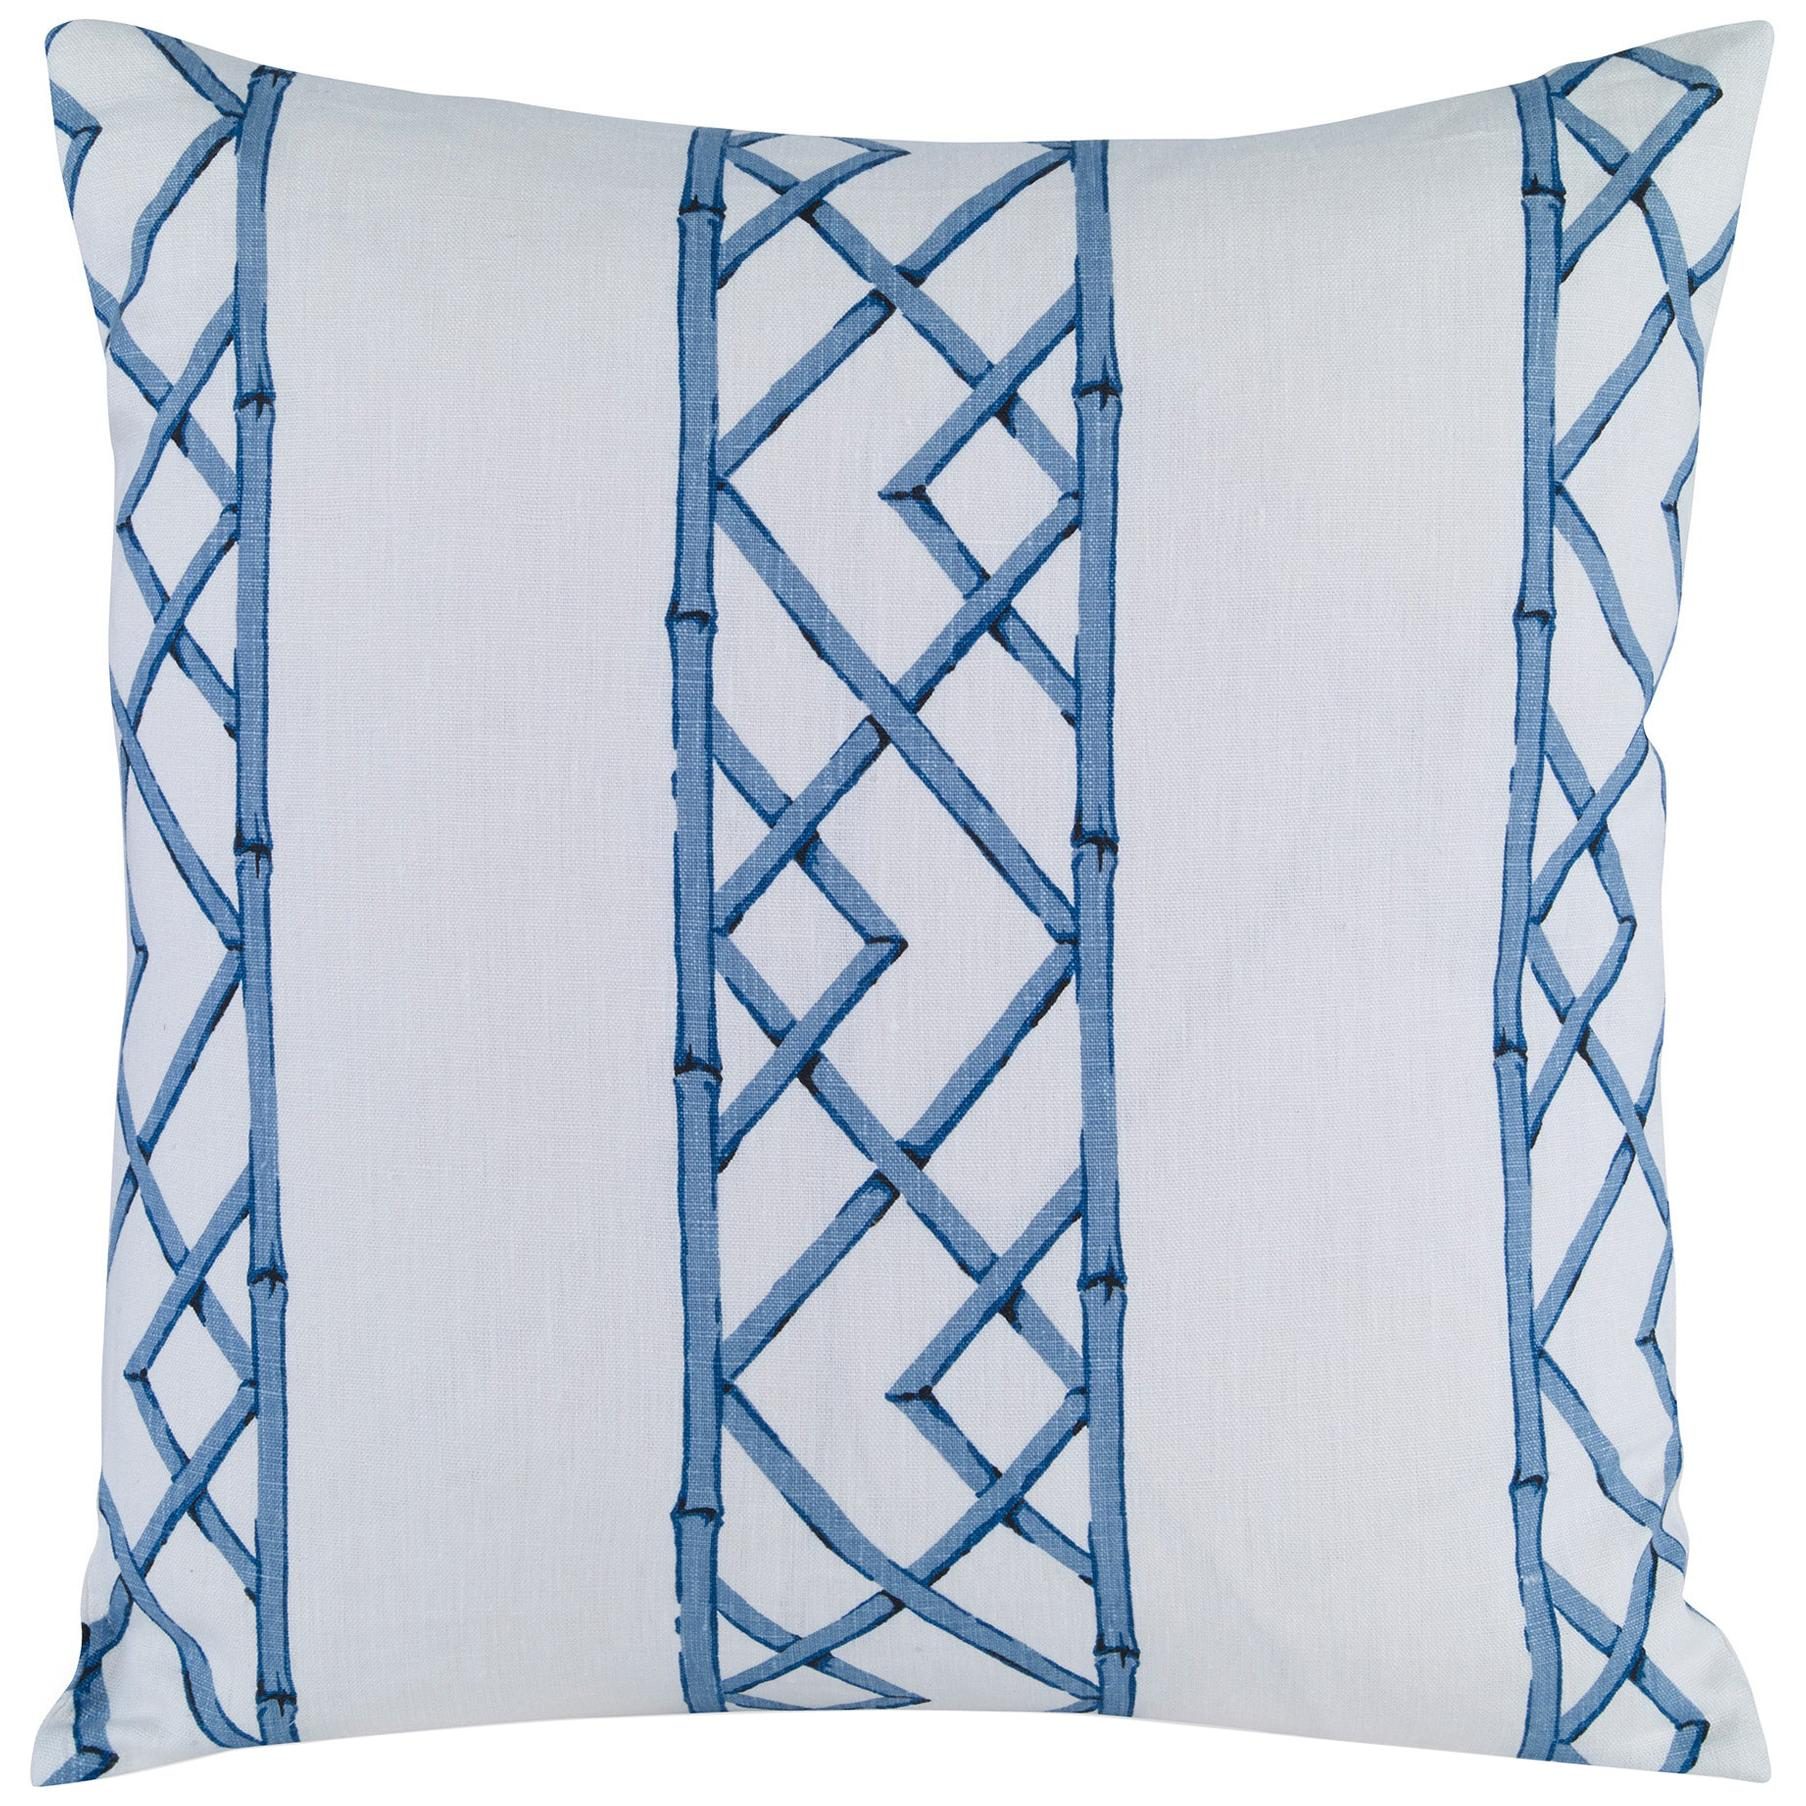 Latticely Pillow in Ultramarine by CuratedKravet